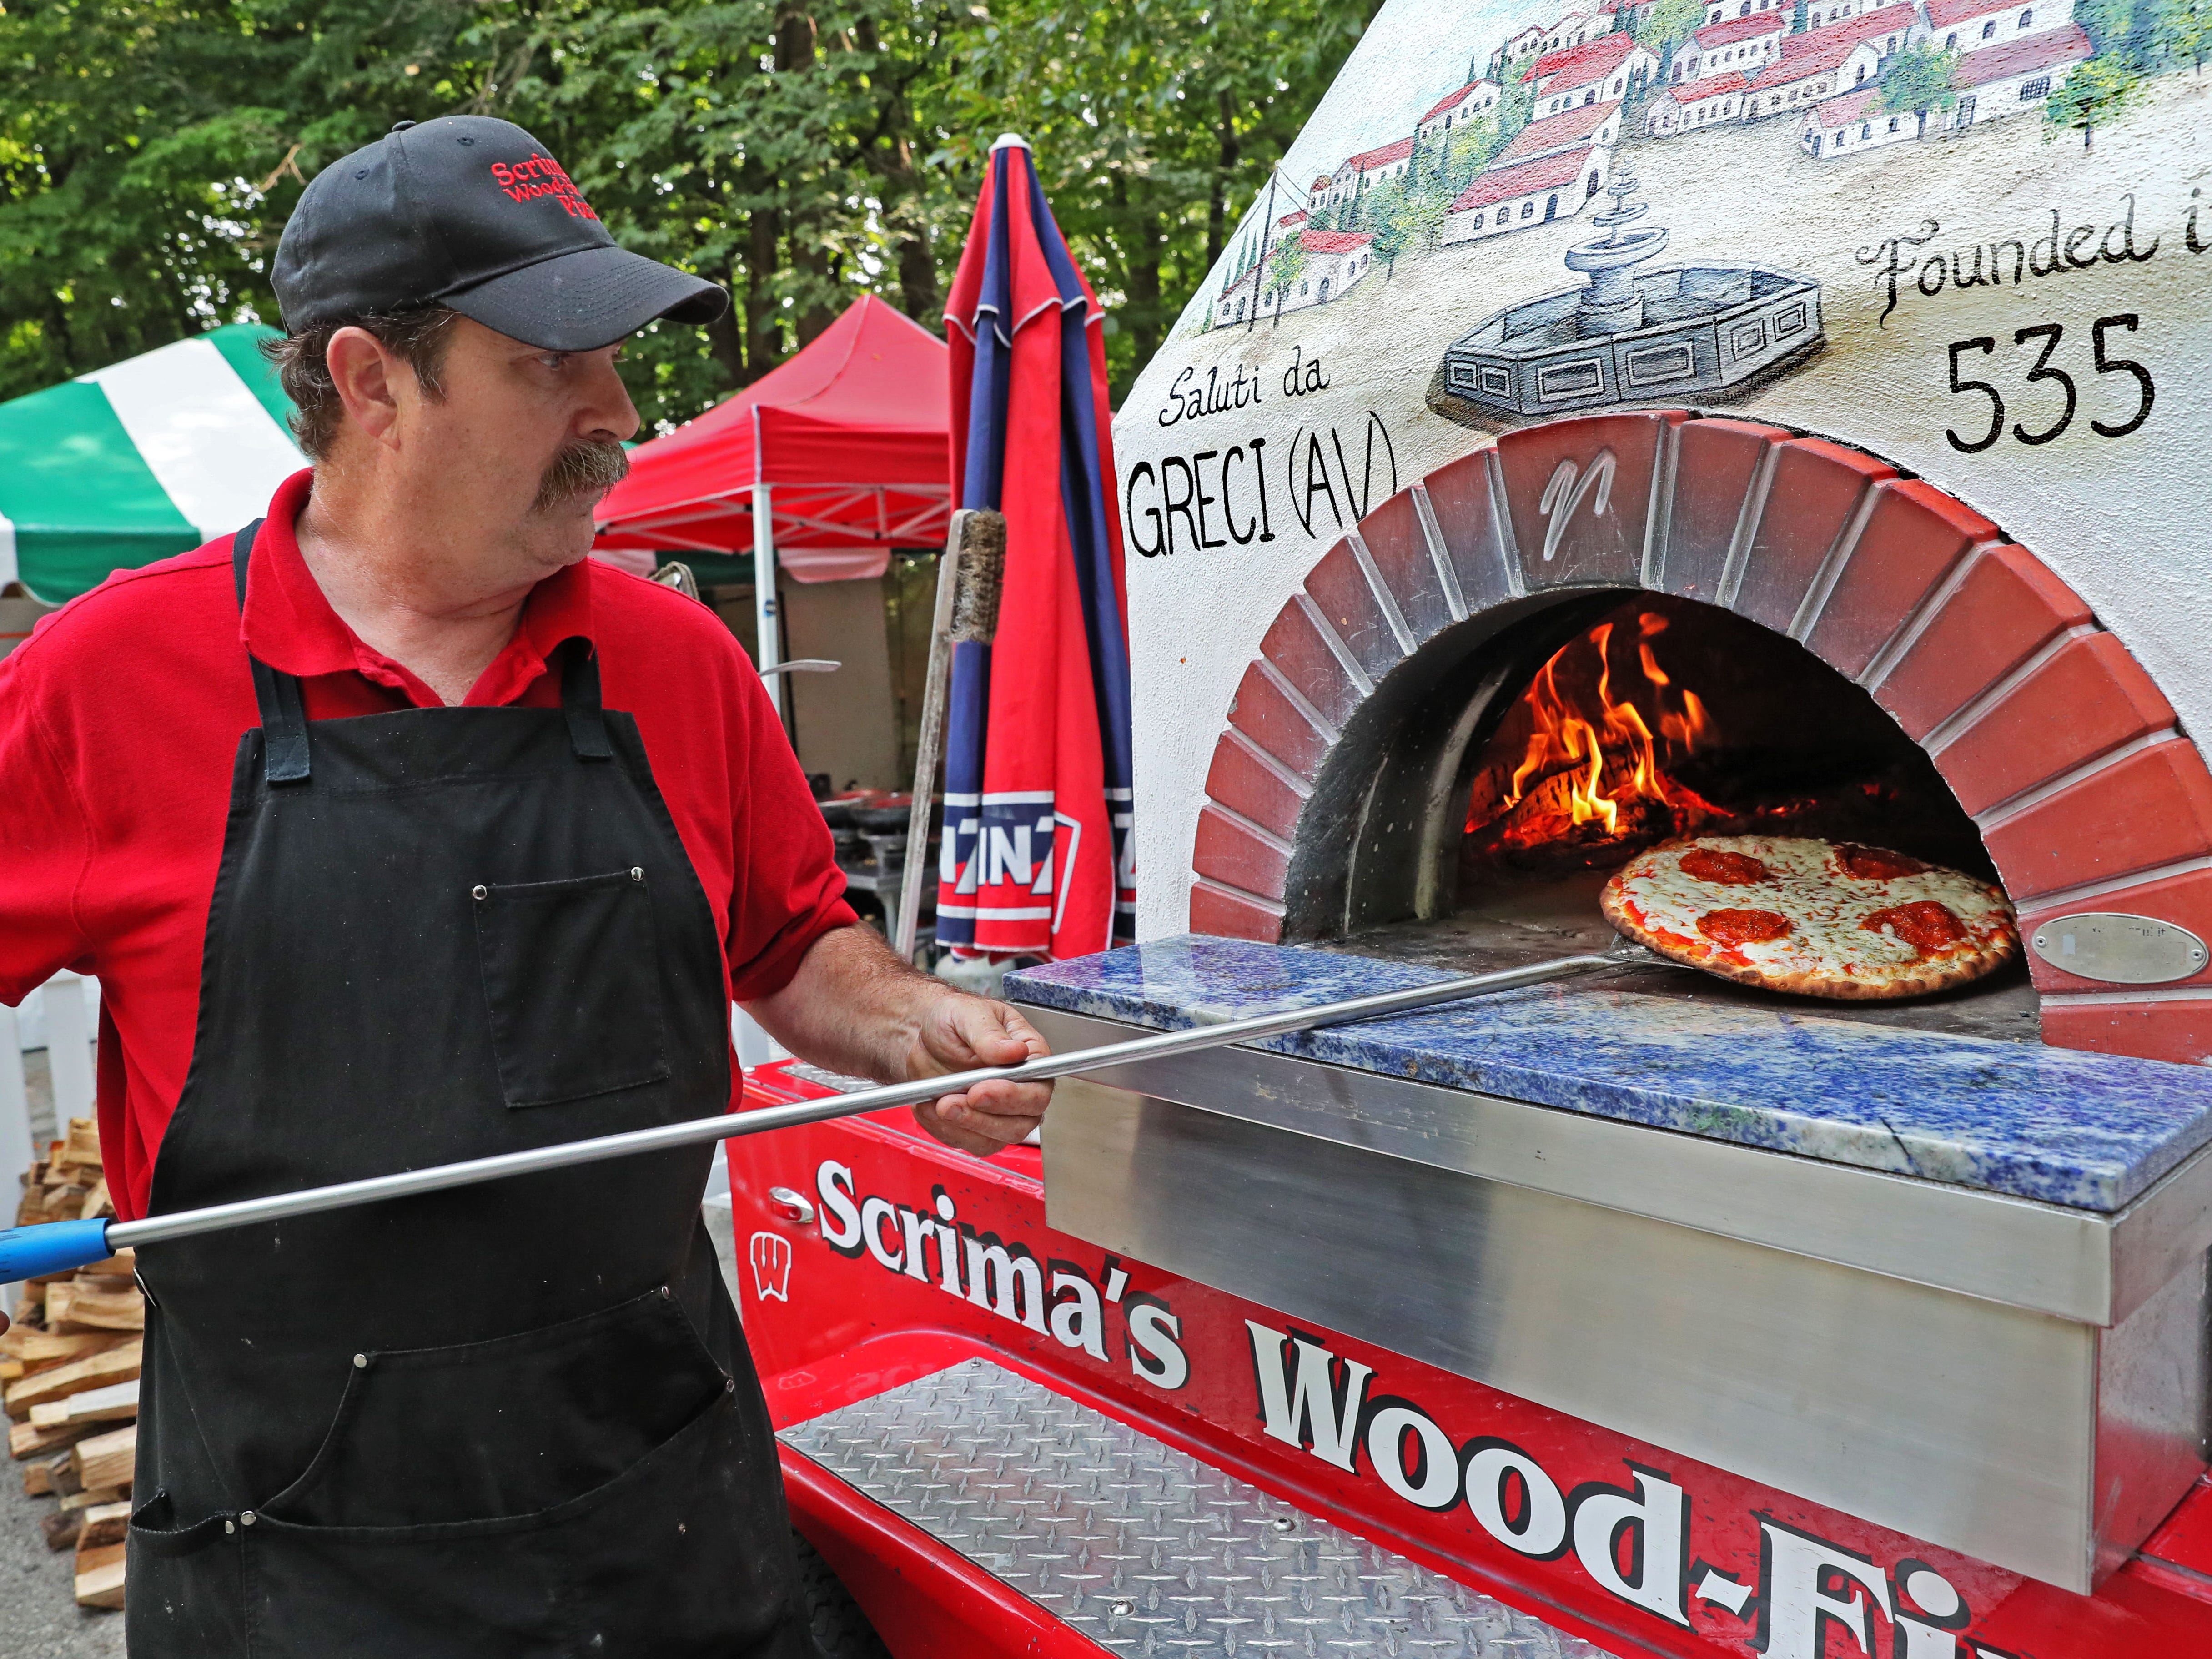 There were 34 restaurants and food vendors at the 34th annual Milwaukee Journal Sentinel a la Carte at the Milwaukee County Zoo. Jim Whitehurst makes a pizza at Scrima's Wood-Fired Pizza.